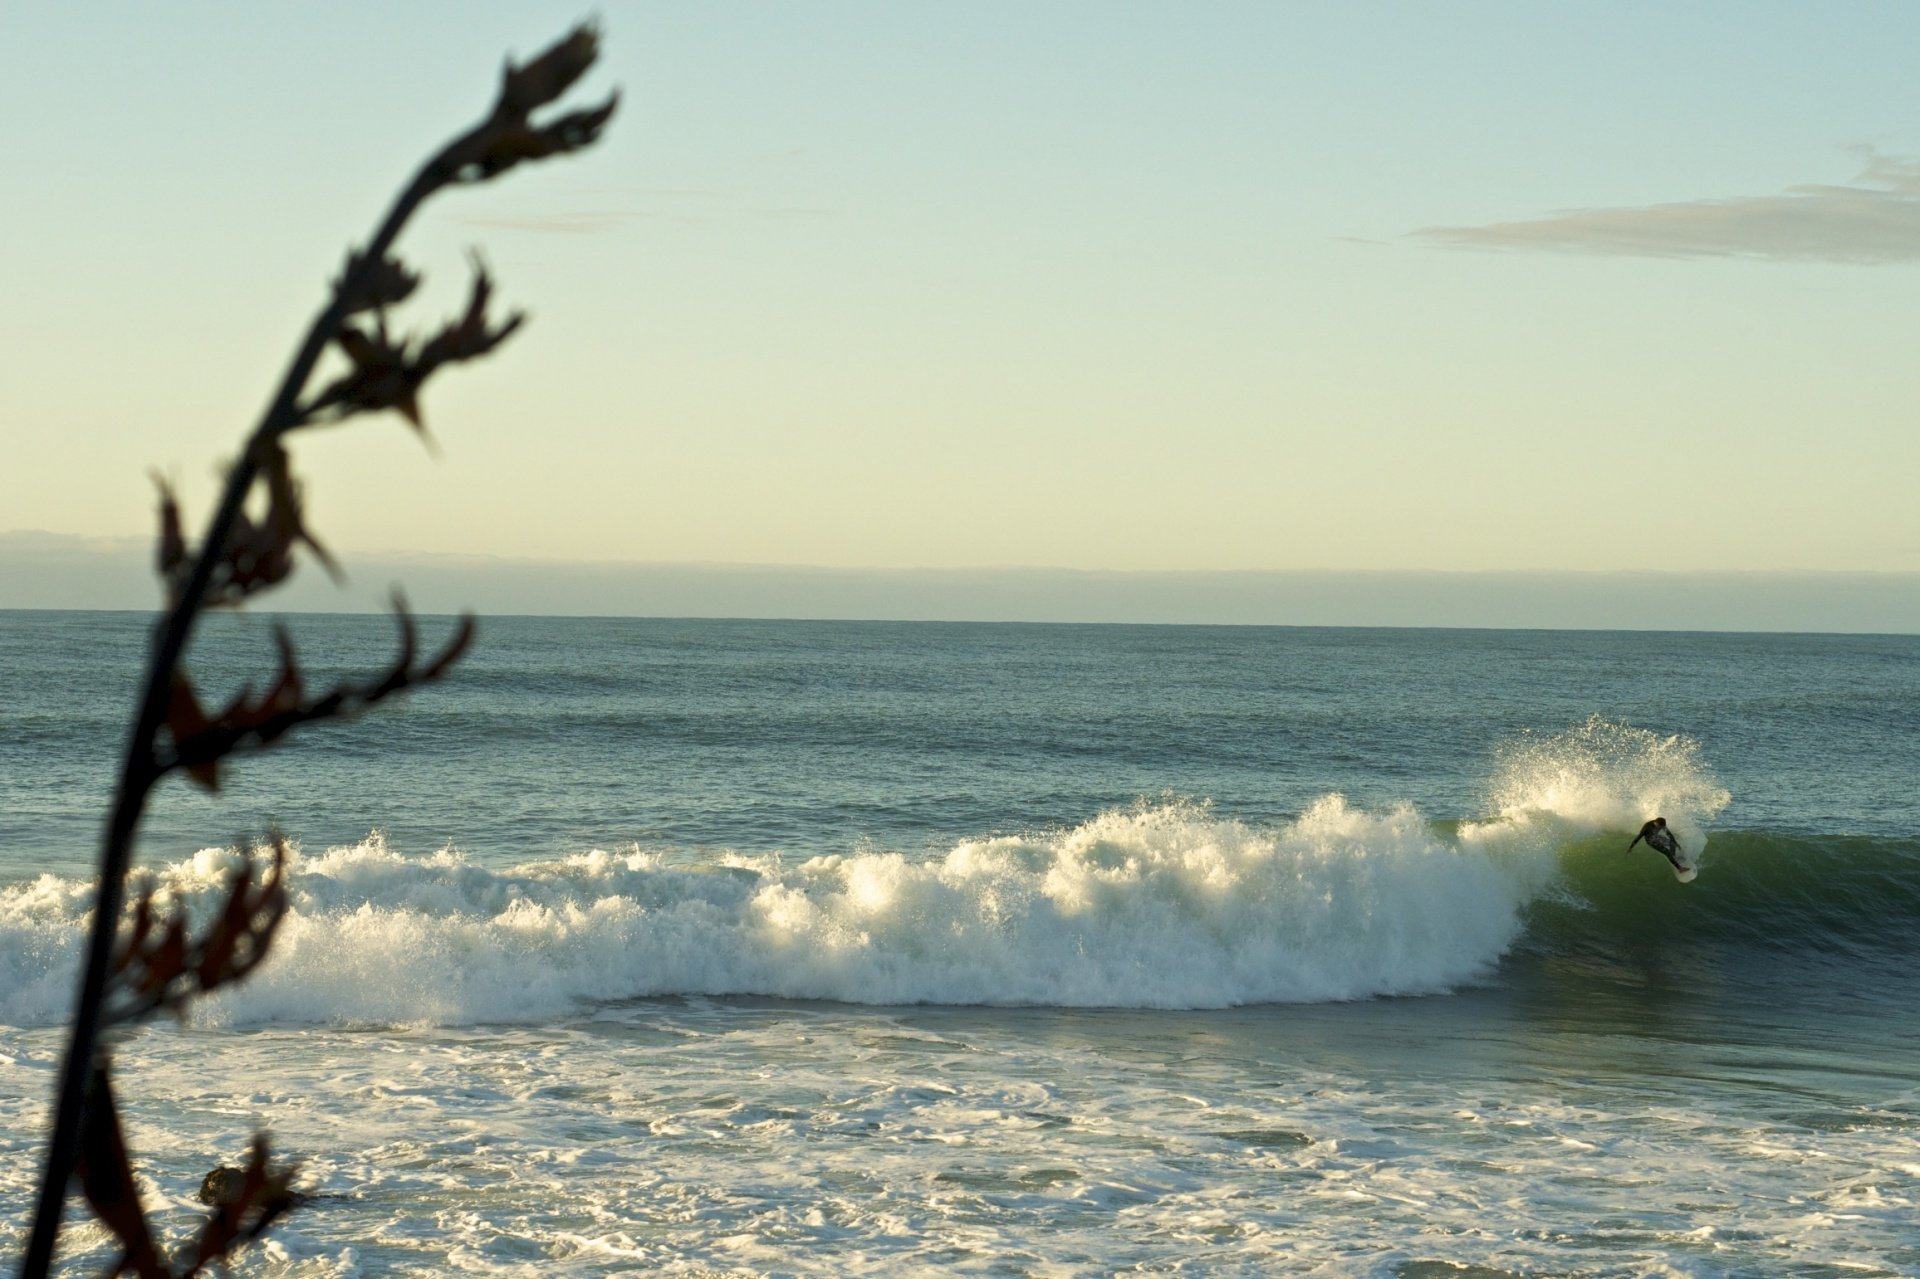 OregonSeanFoto's photo of Raglan